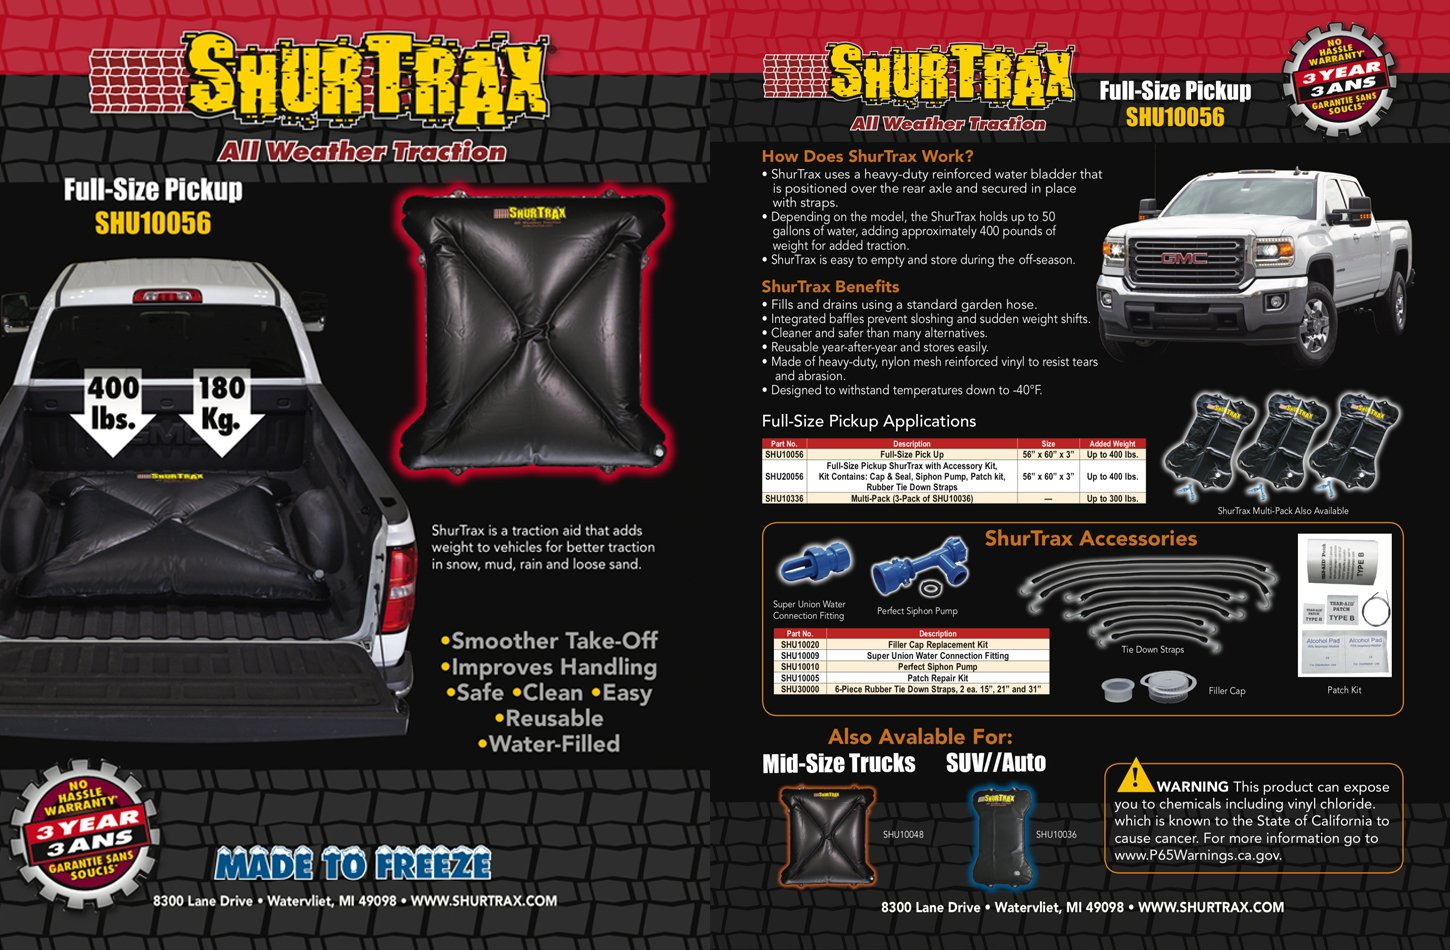 Shurtrax Full-Size Pick-UP Sell Sheet